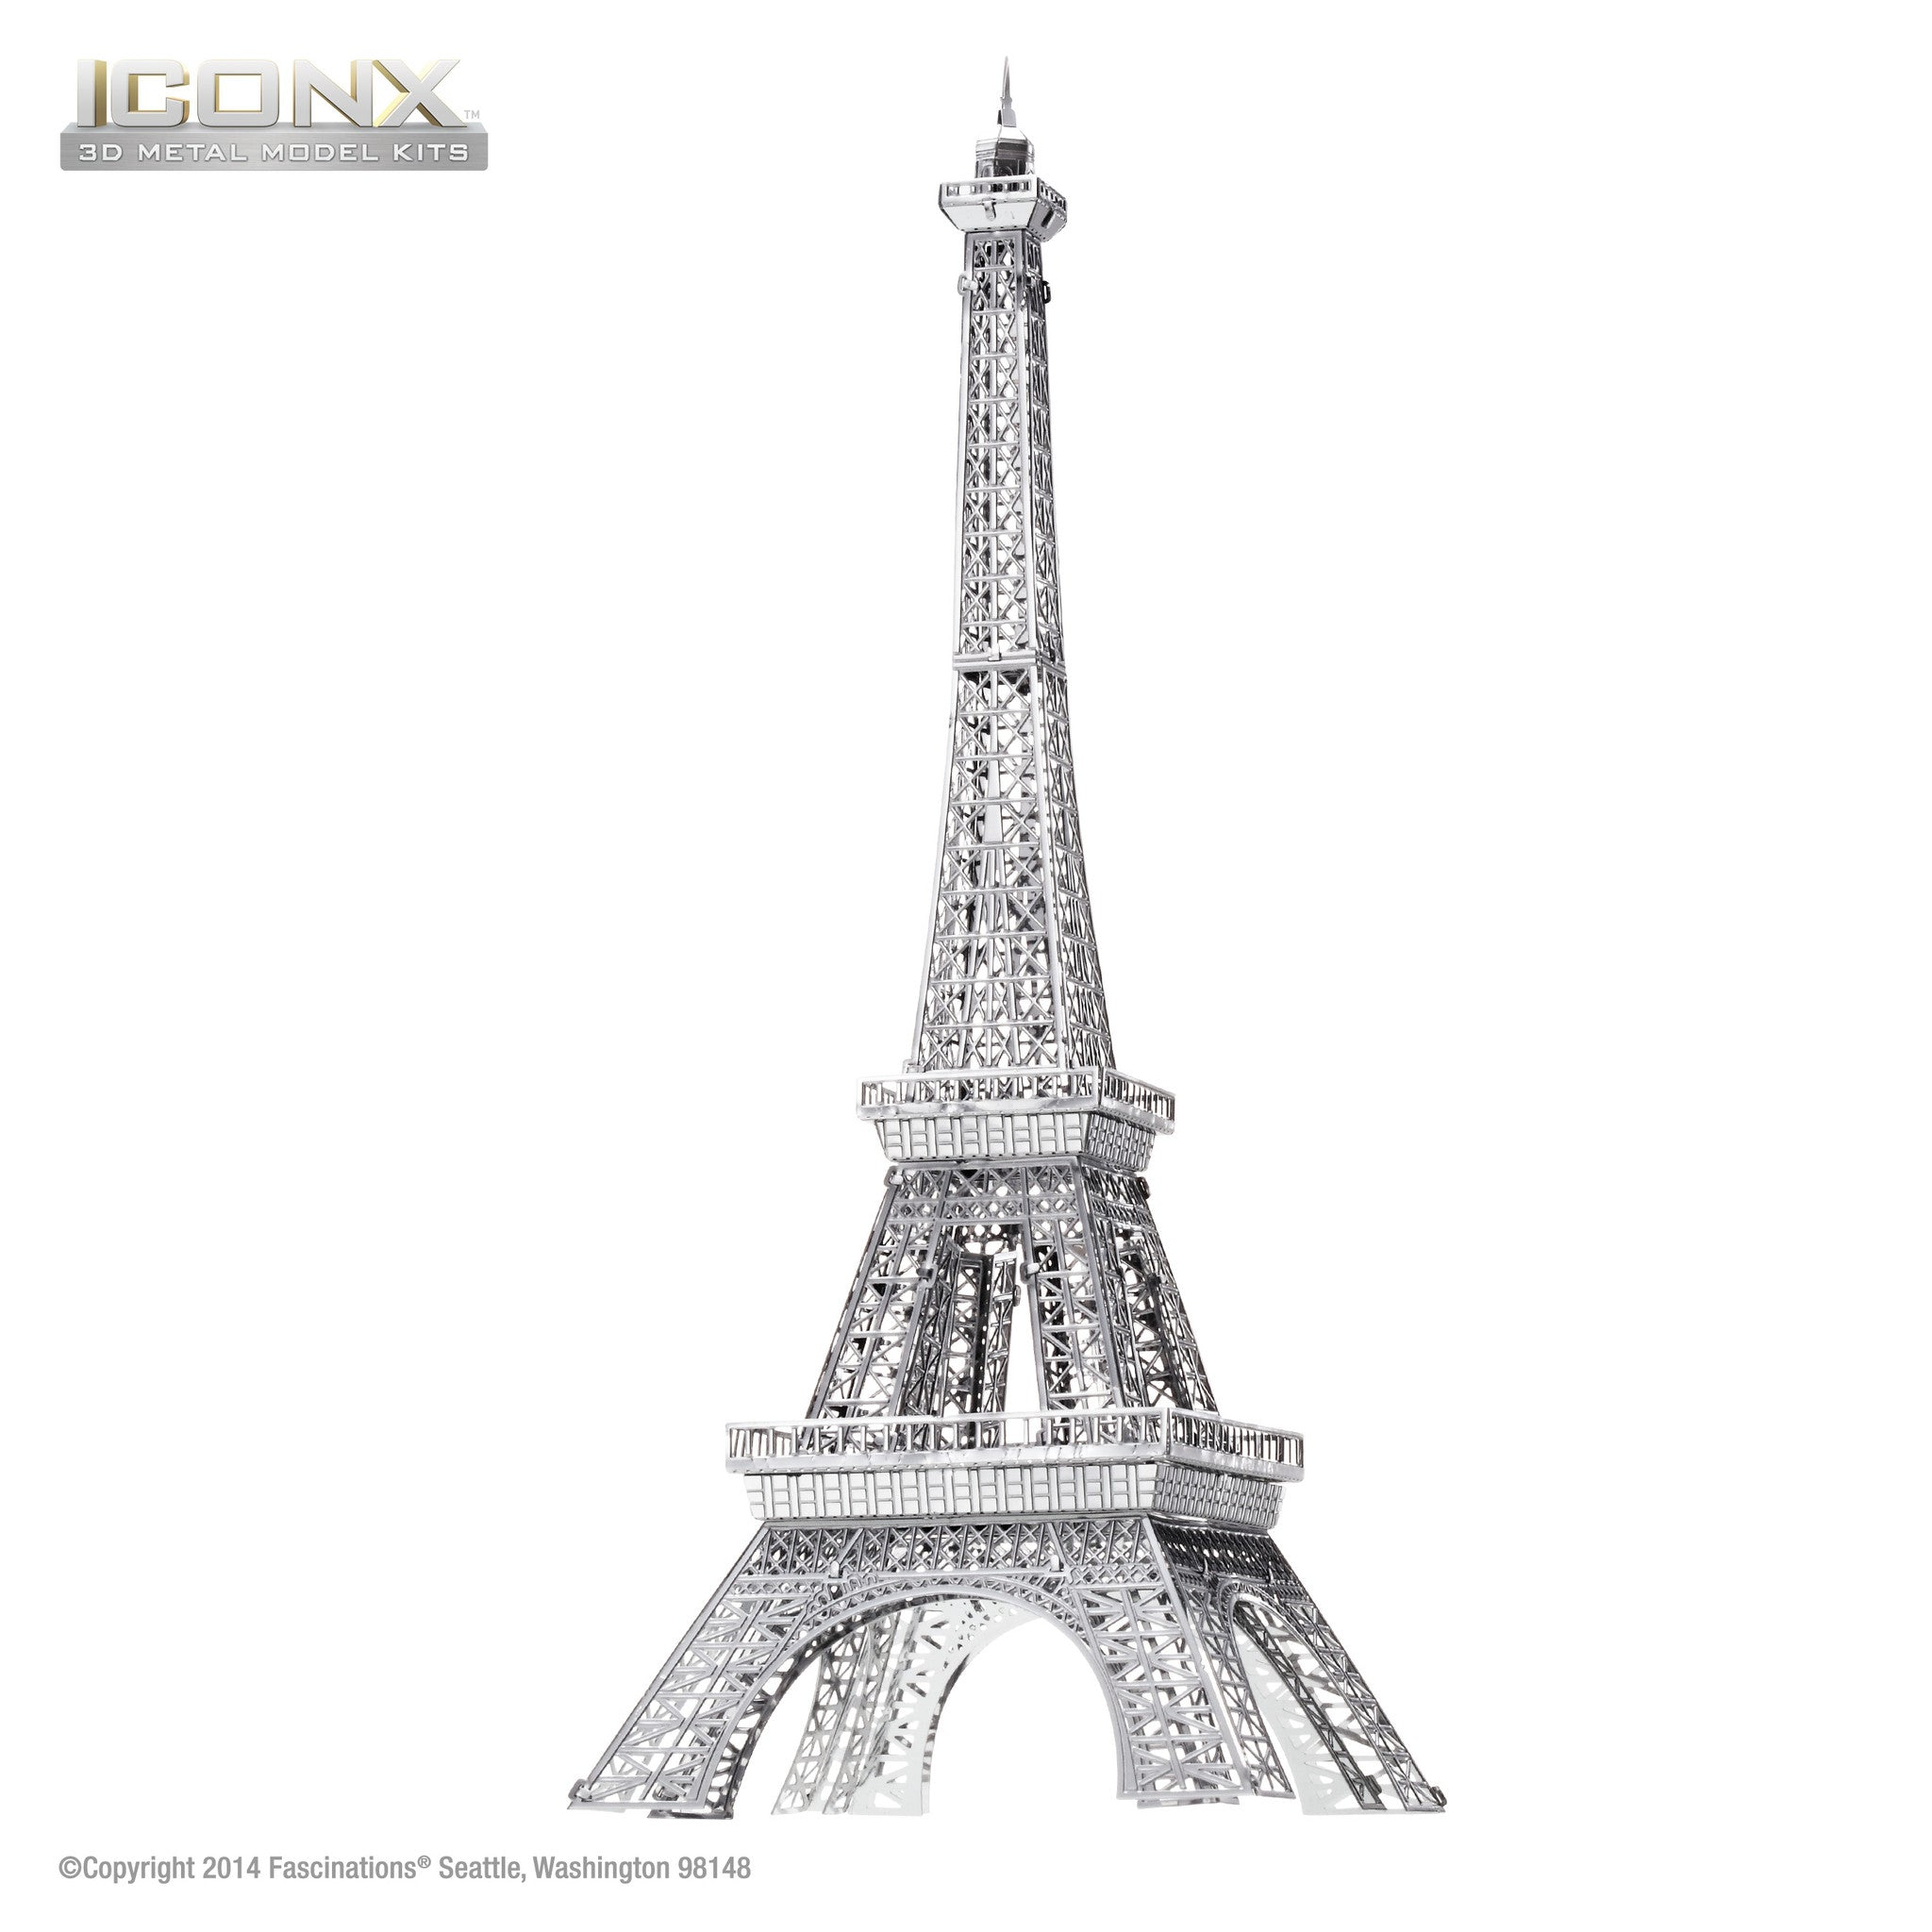 Fascinations Metal Earth 3D ICONX Laser Cut Model Eiffel Tower